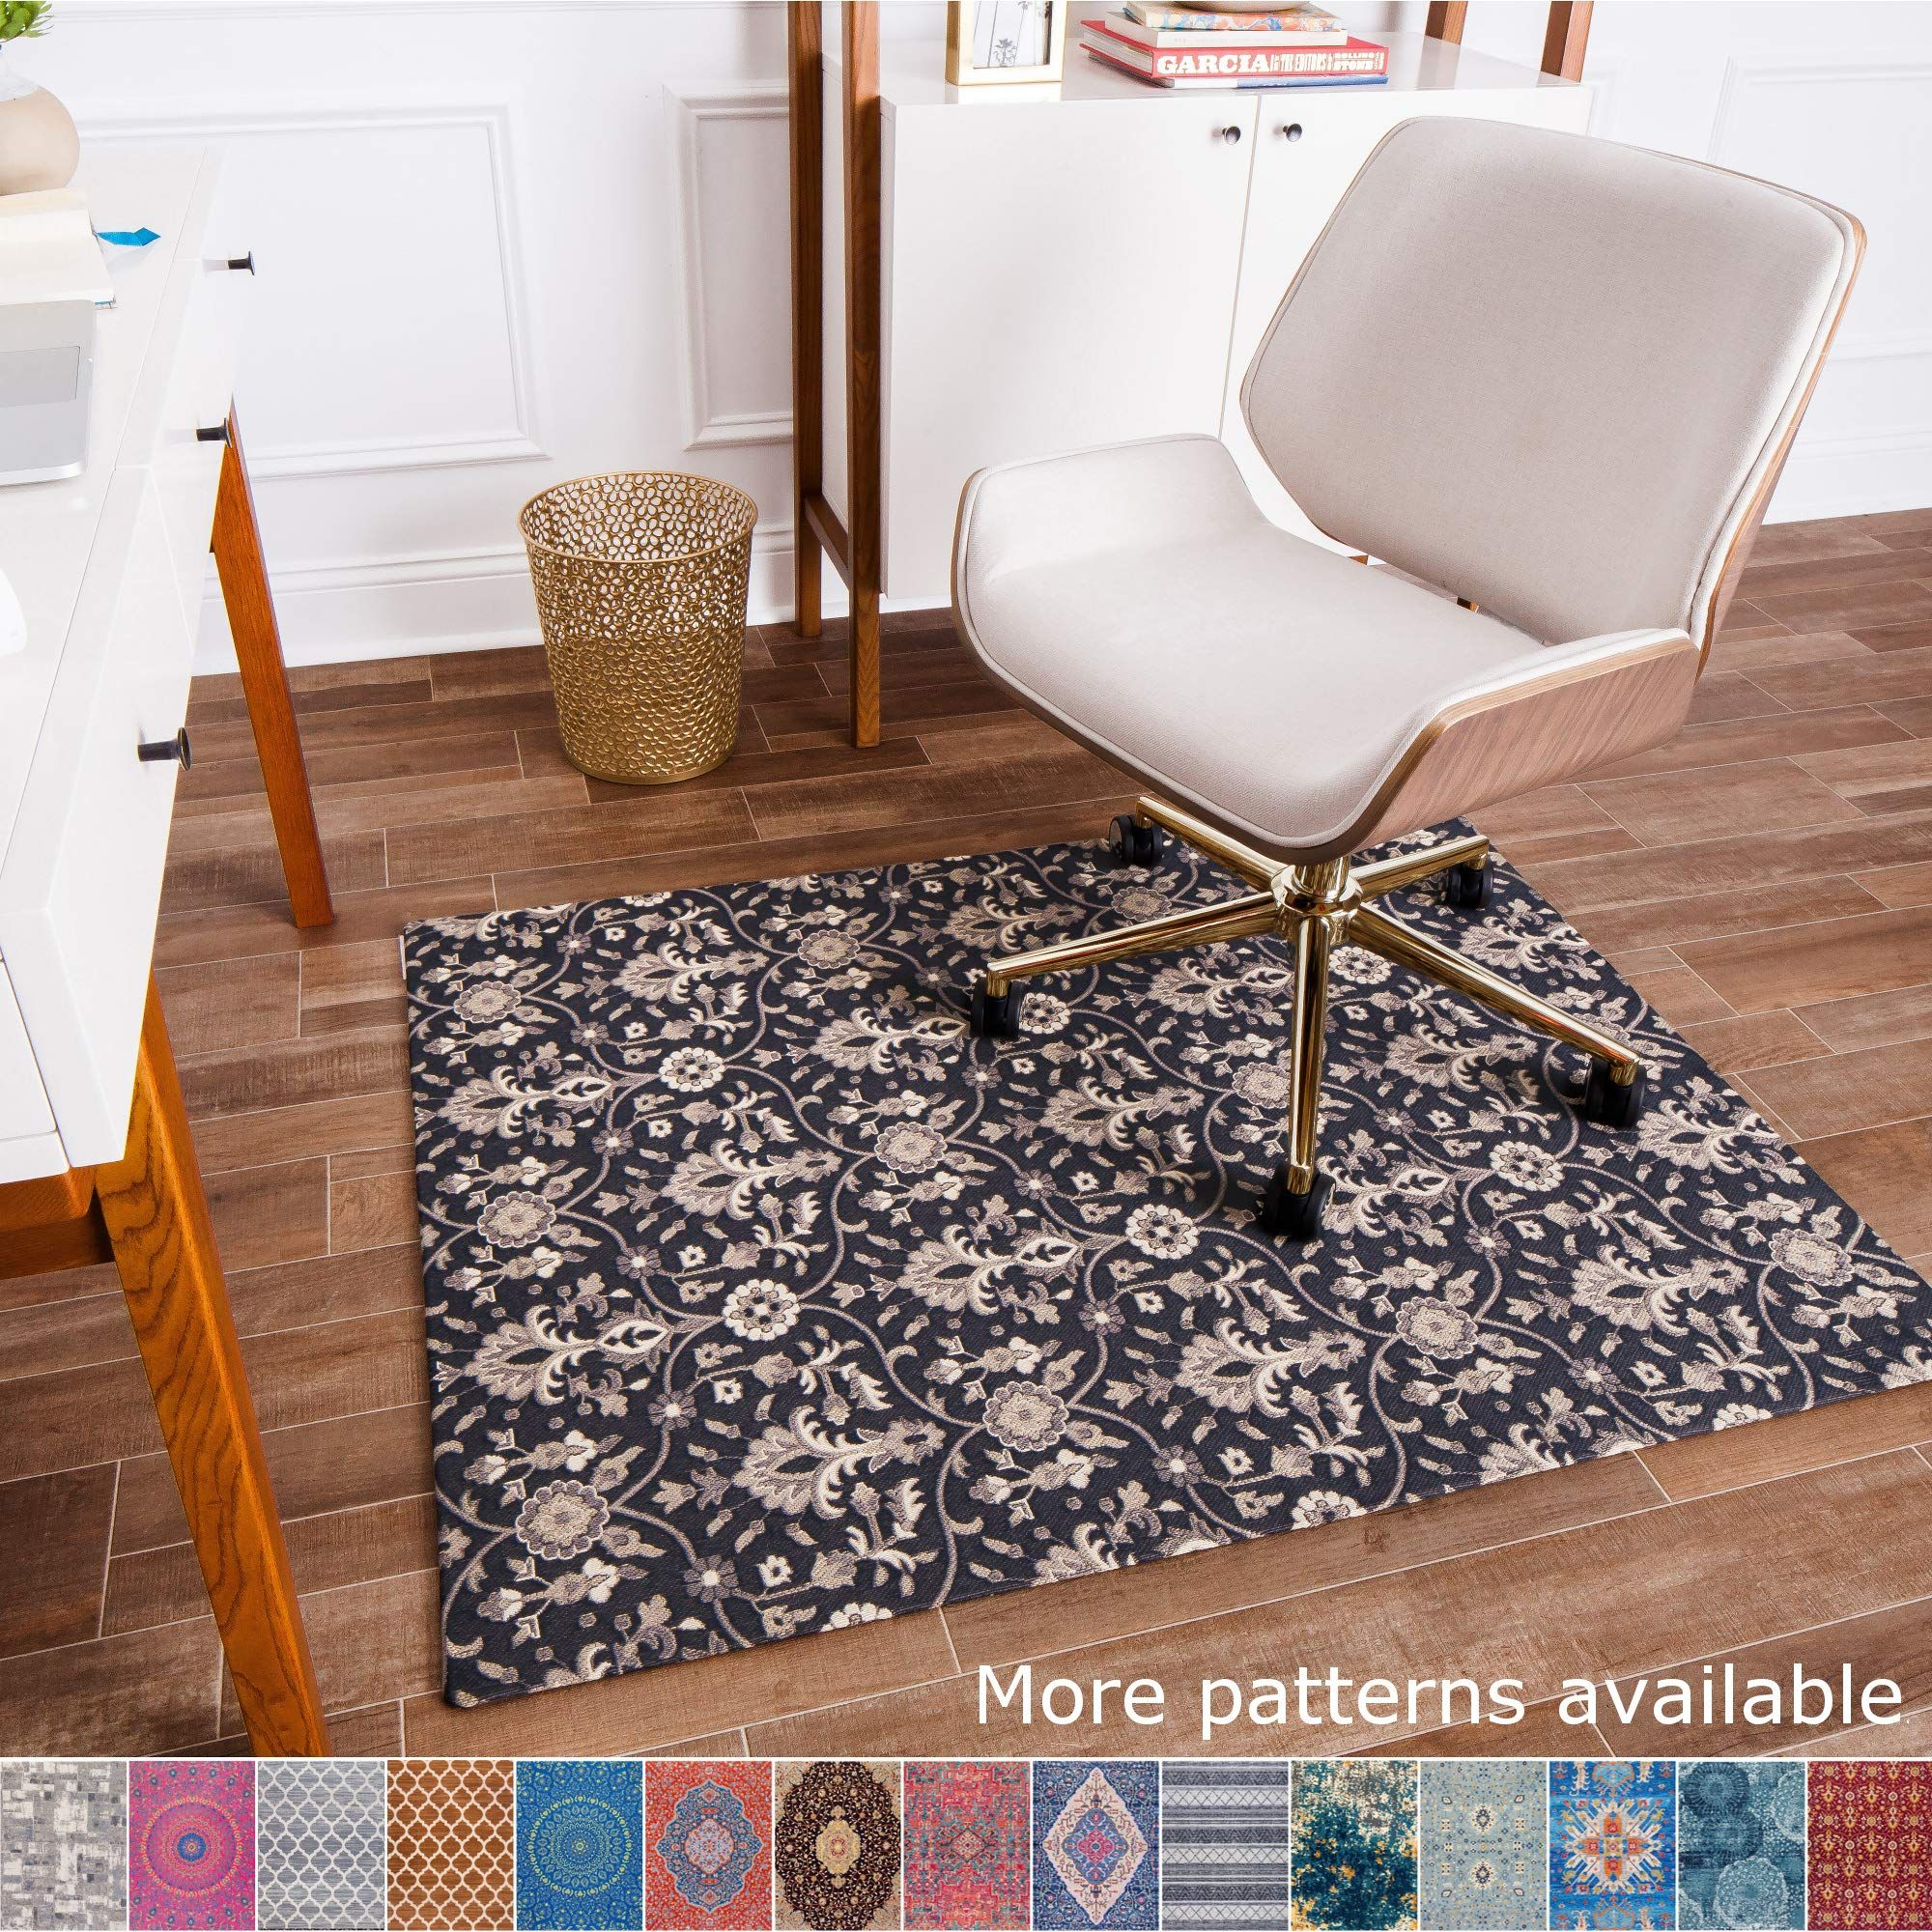 Anji Mountain Chair Mat Rug D Collection 1 4 Quot Thick For Low Pile Carpets Amp Hard Surfaces Alhambra Blac In 2020 Floor Rugs Low Pile Carpet Rugs On Carpet